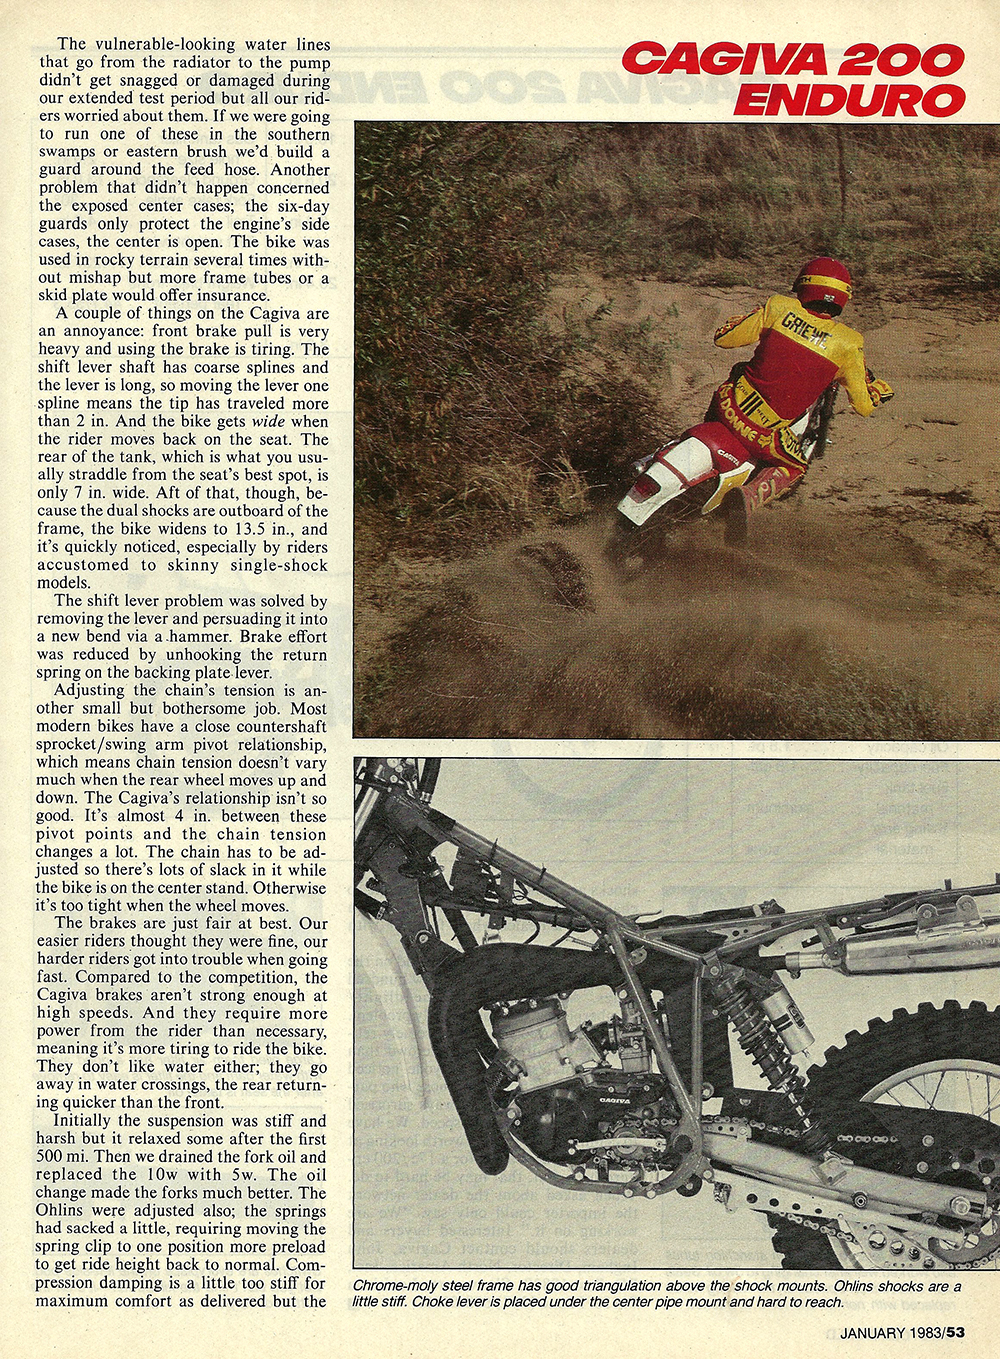 1983 Cagiva 200 Enduro road test 04.jpg